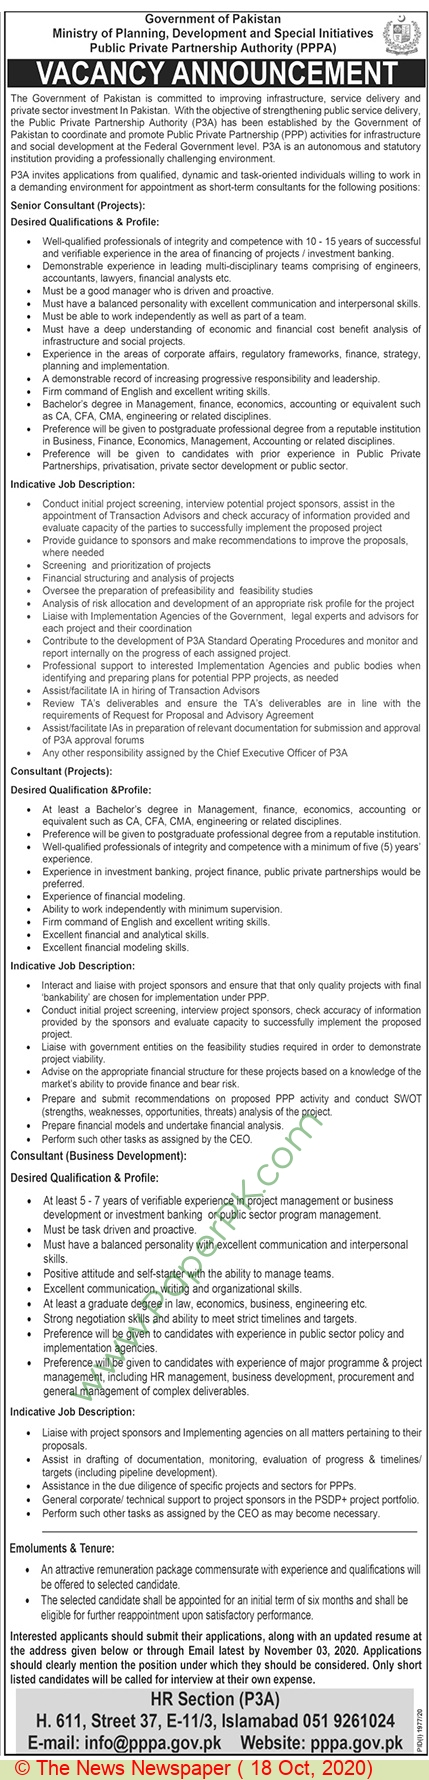 Ministry Of Planning Development & Special Initiatives jobs newspaper ad for Senior Consultant in Islamabad